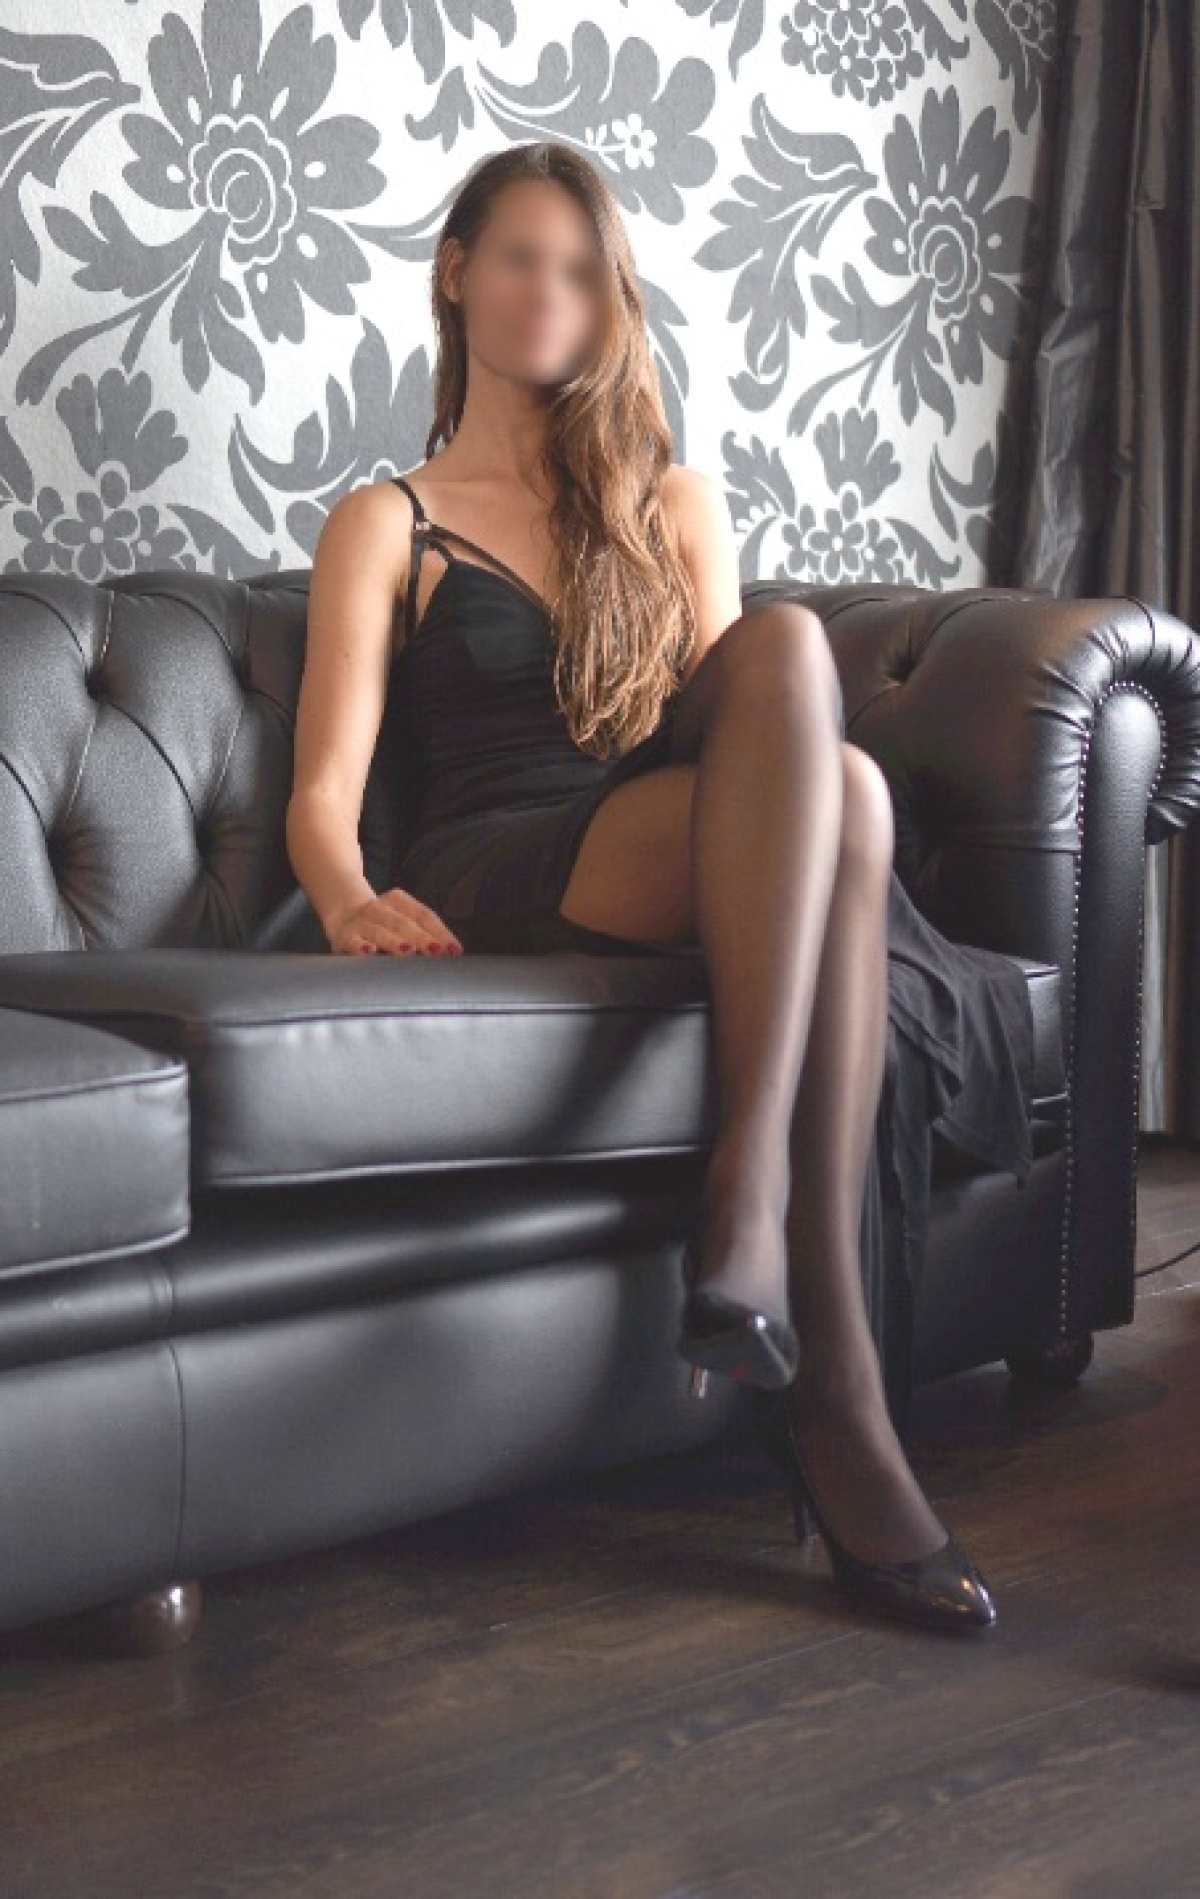 high class escort poland outcall tantric massage